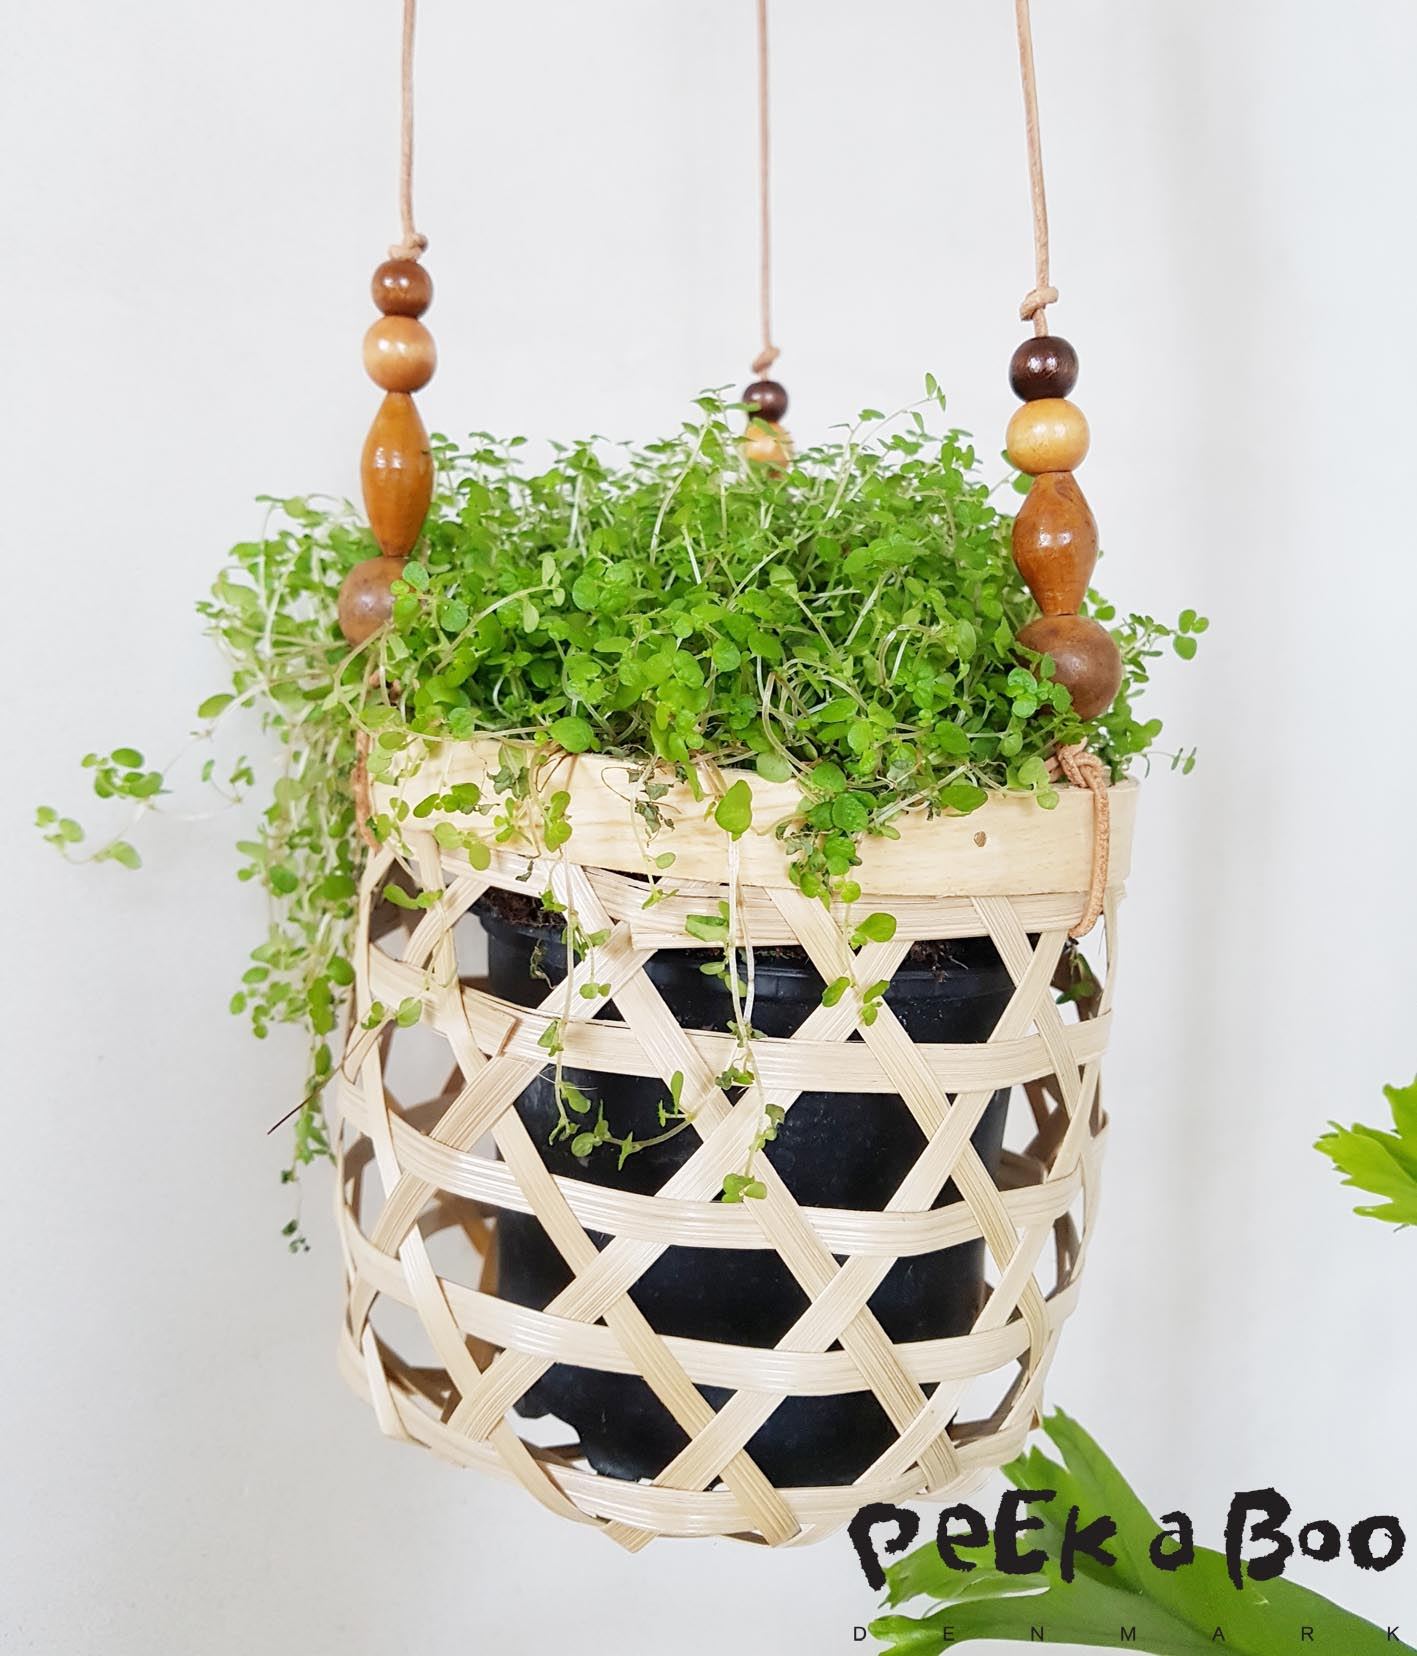 The basket are meent for bread but use them like this for your green plants in your home.